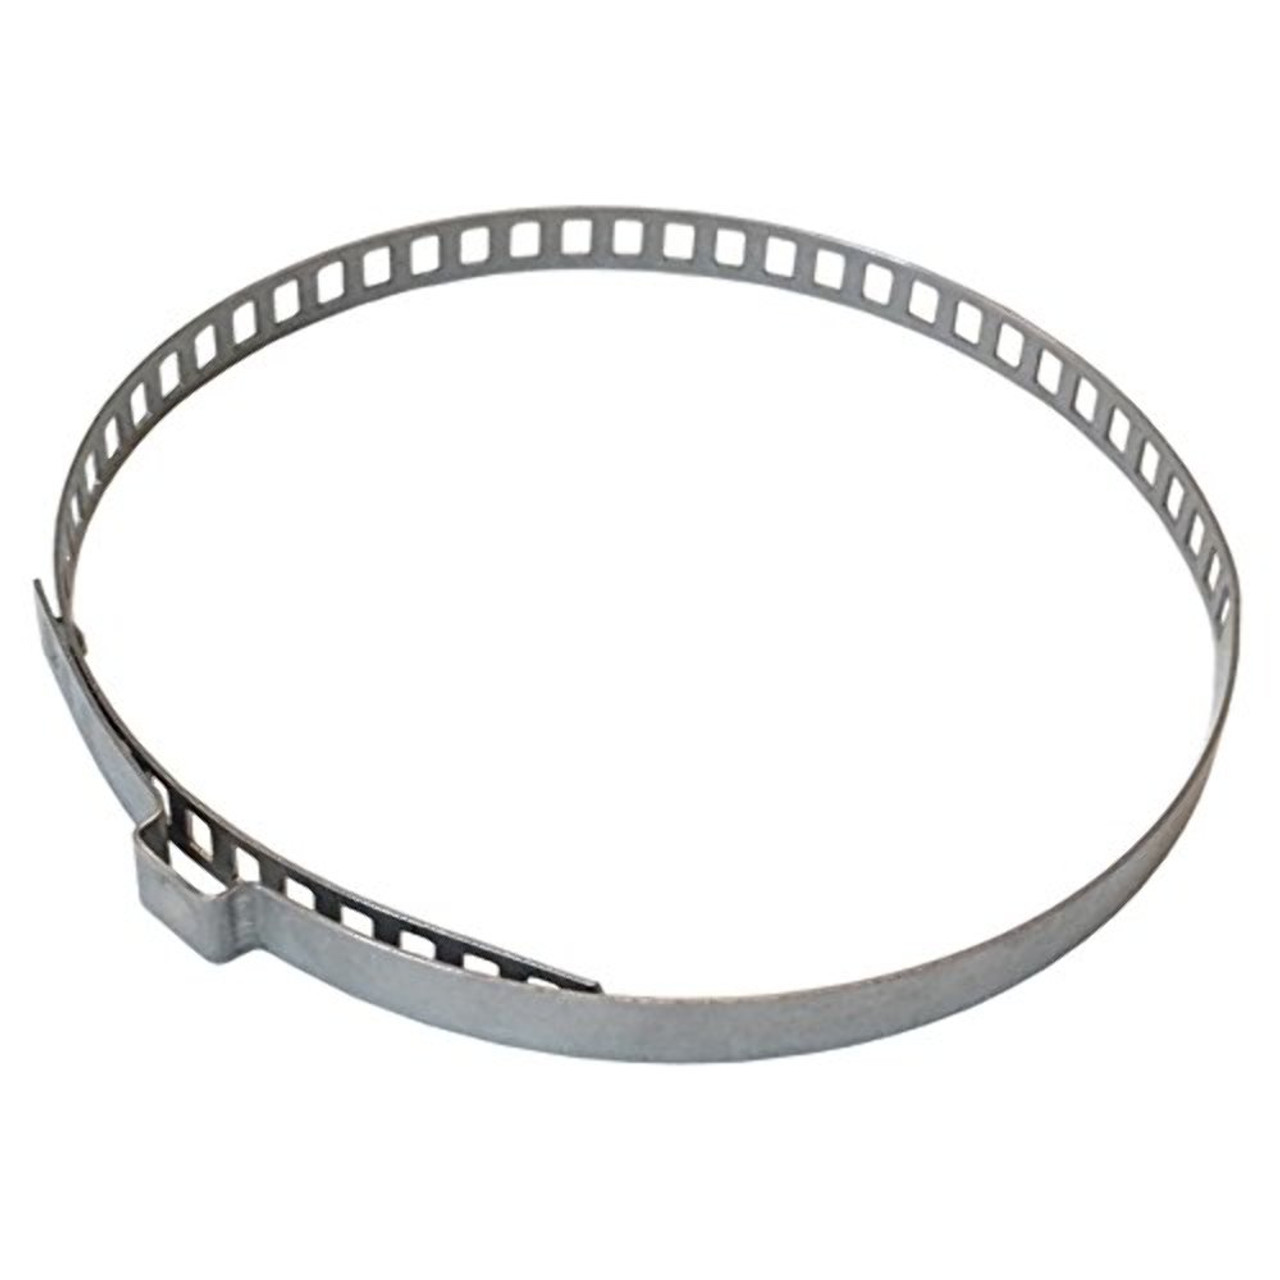 """Empi 86-5833-0 Universal Stainless Steel Clamp, Small, 7mm Wide, 7"""" Long 10pcs"""